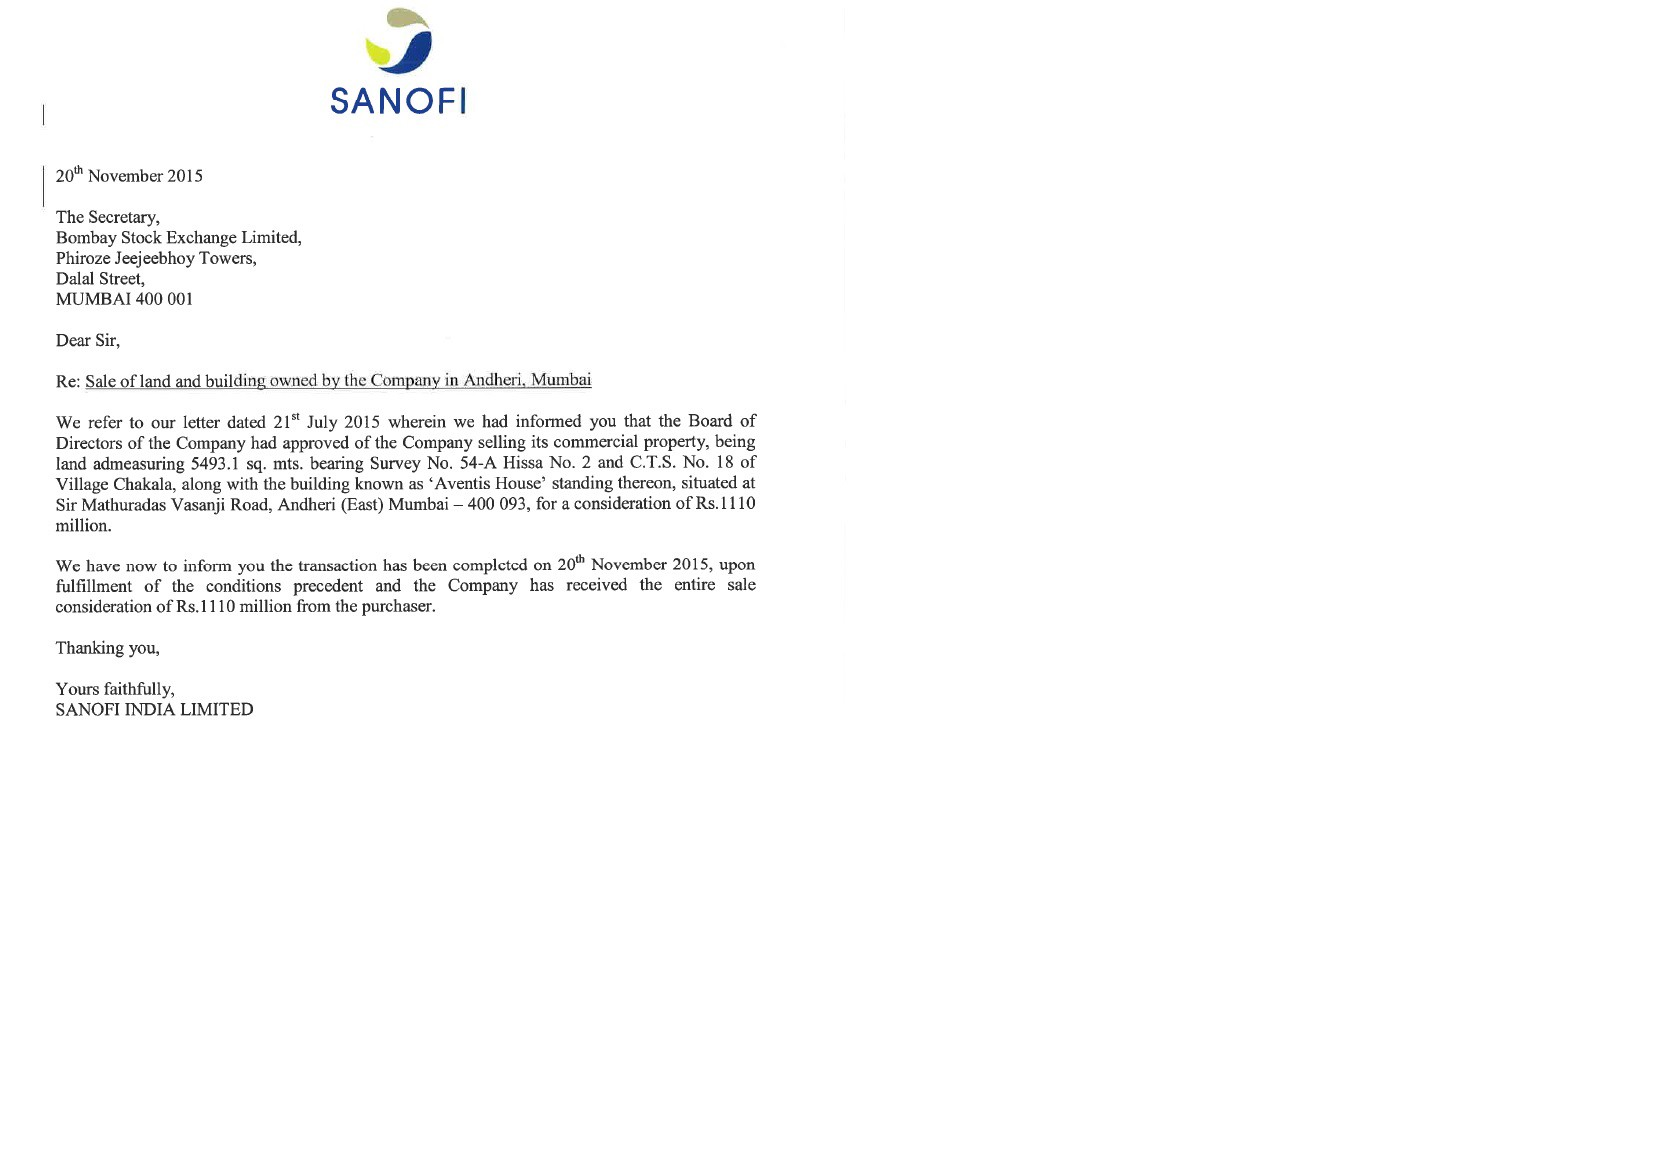 Sanofi India Sells Its Andheri Office Property For Rs 111 Crore